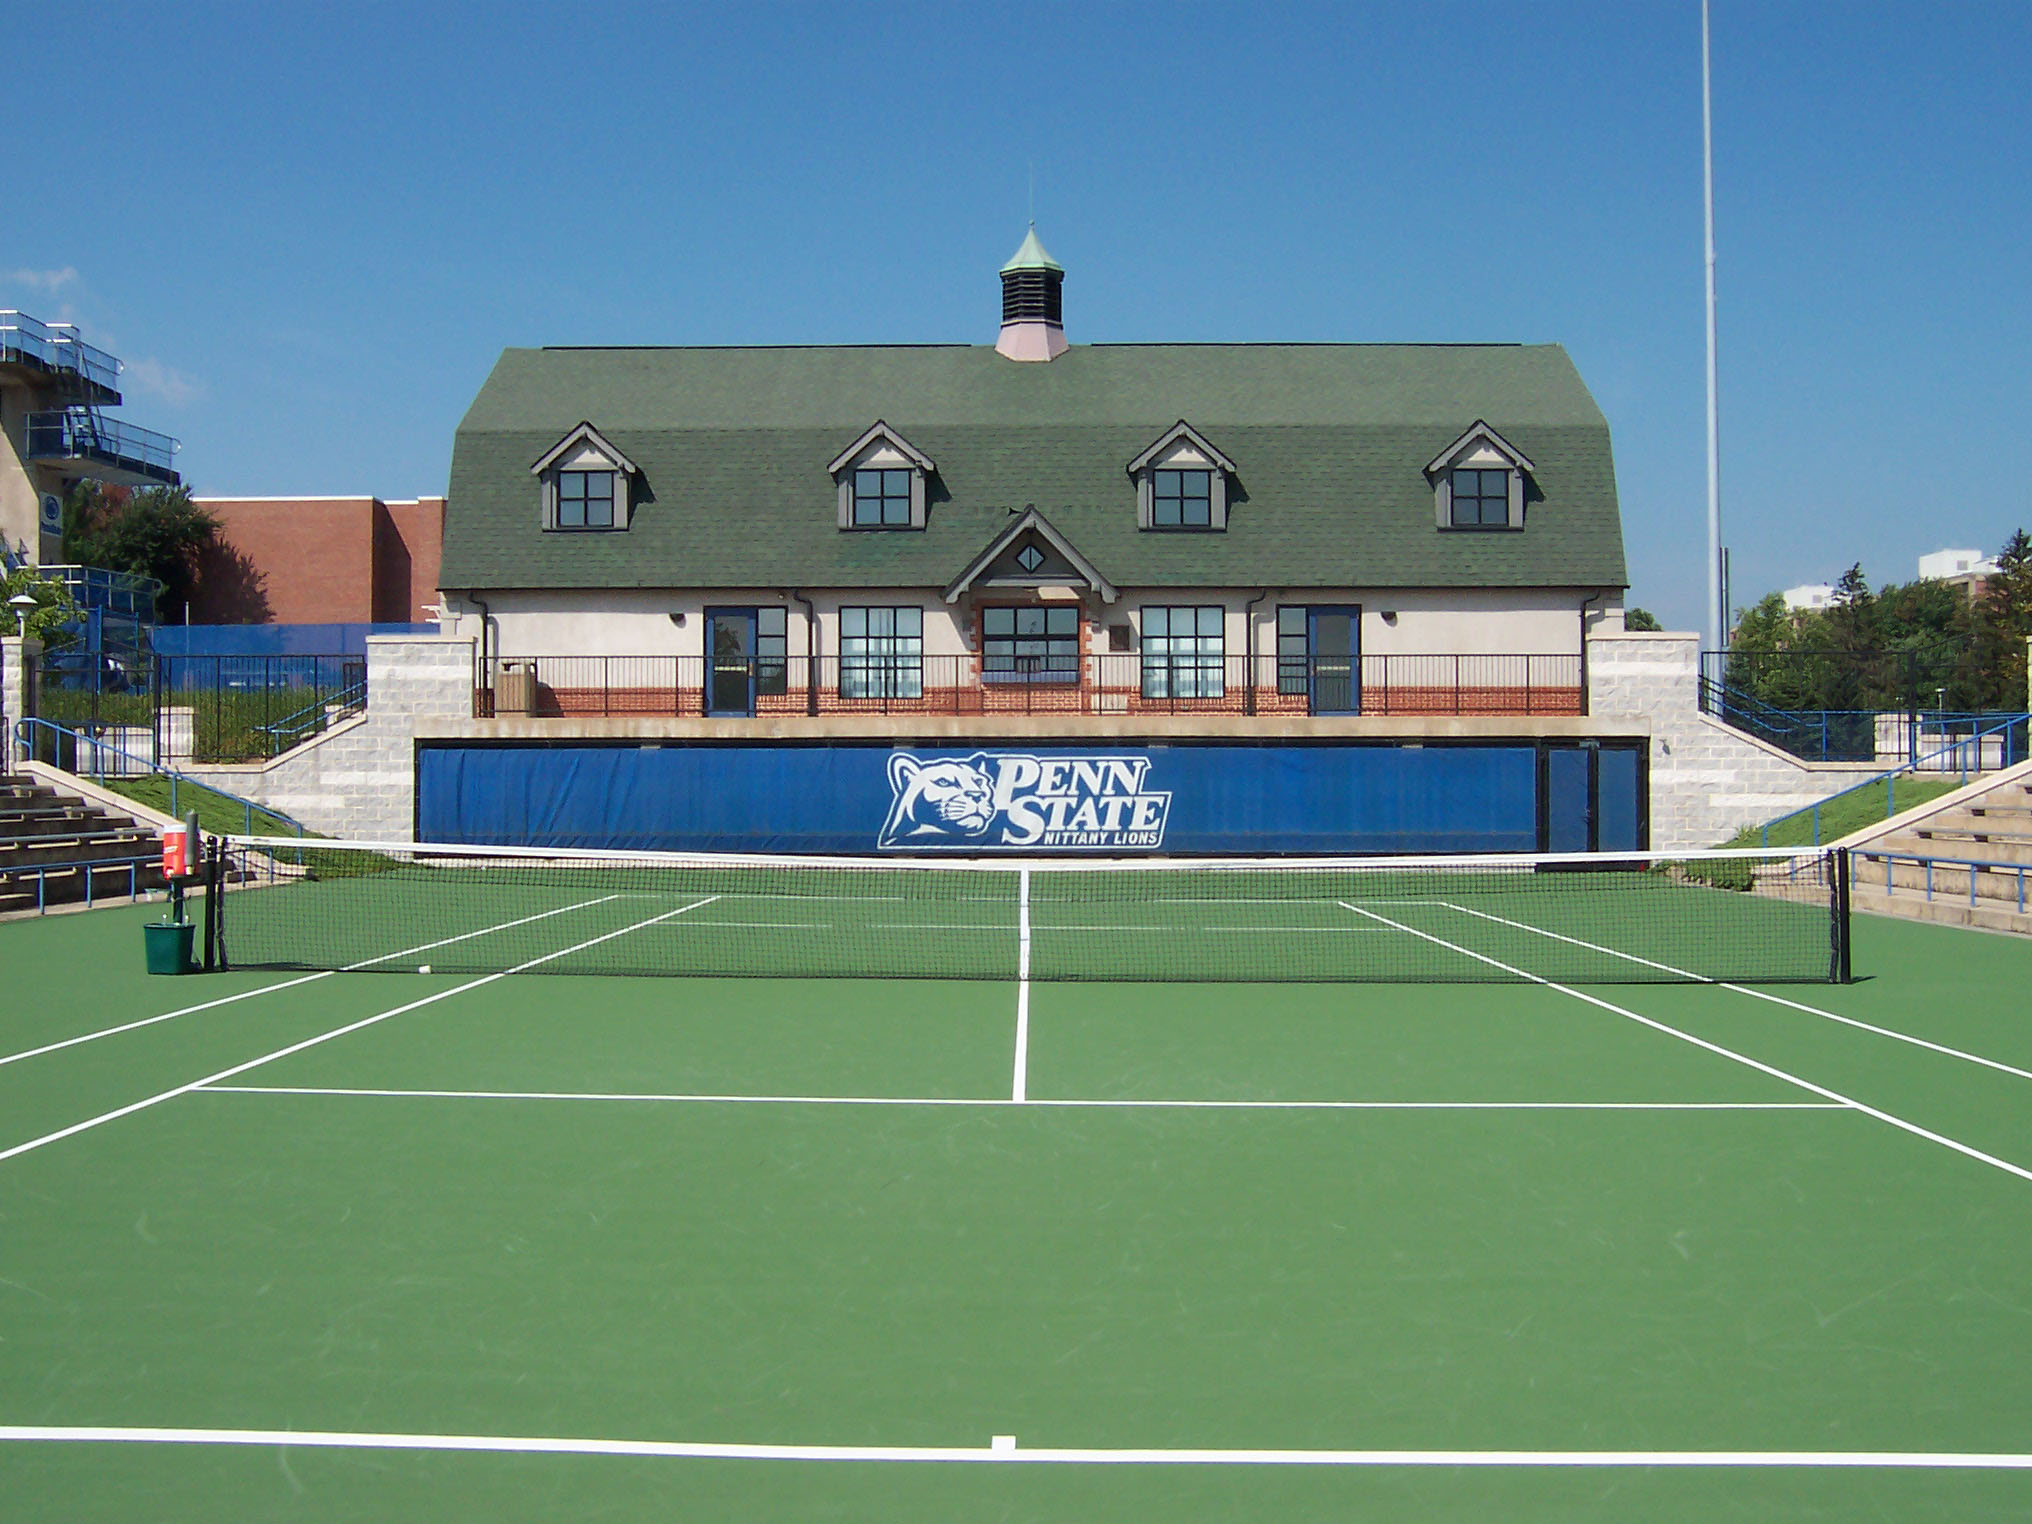 College Tennis Teams Penn State University Team Facilities